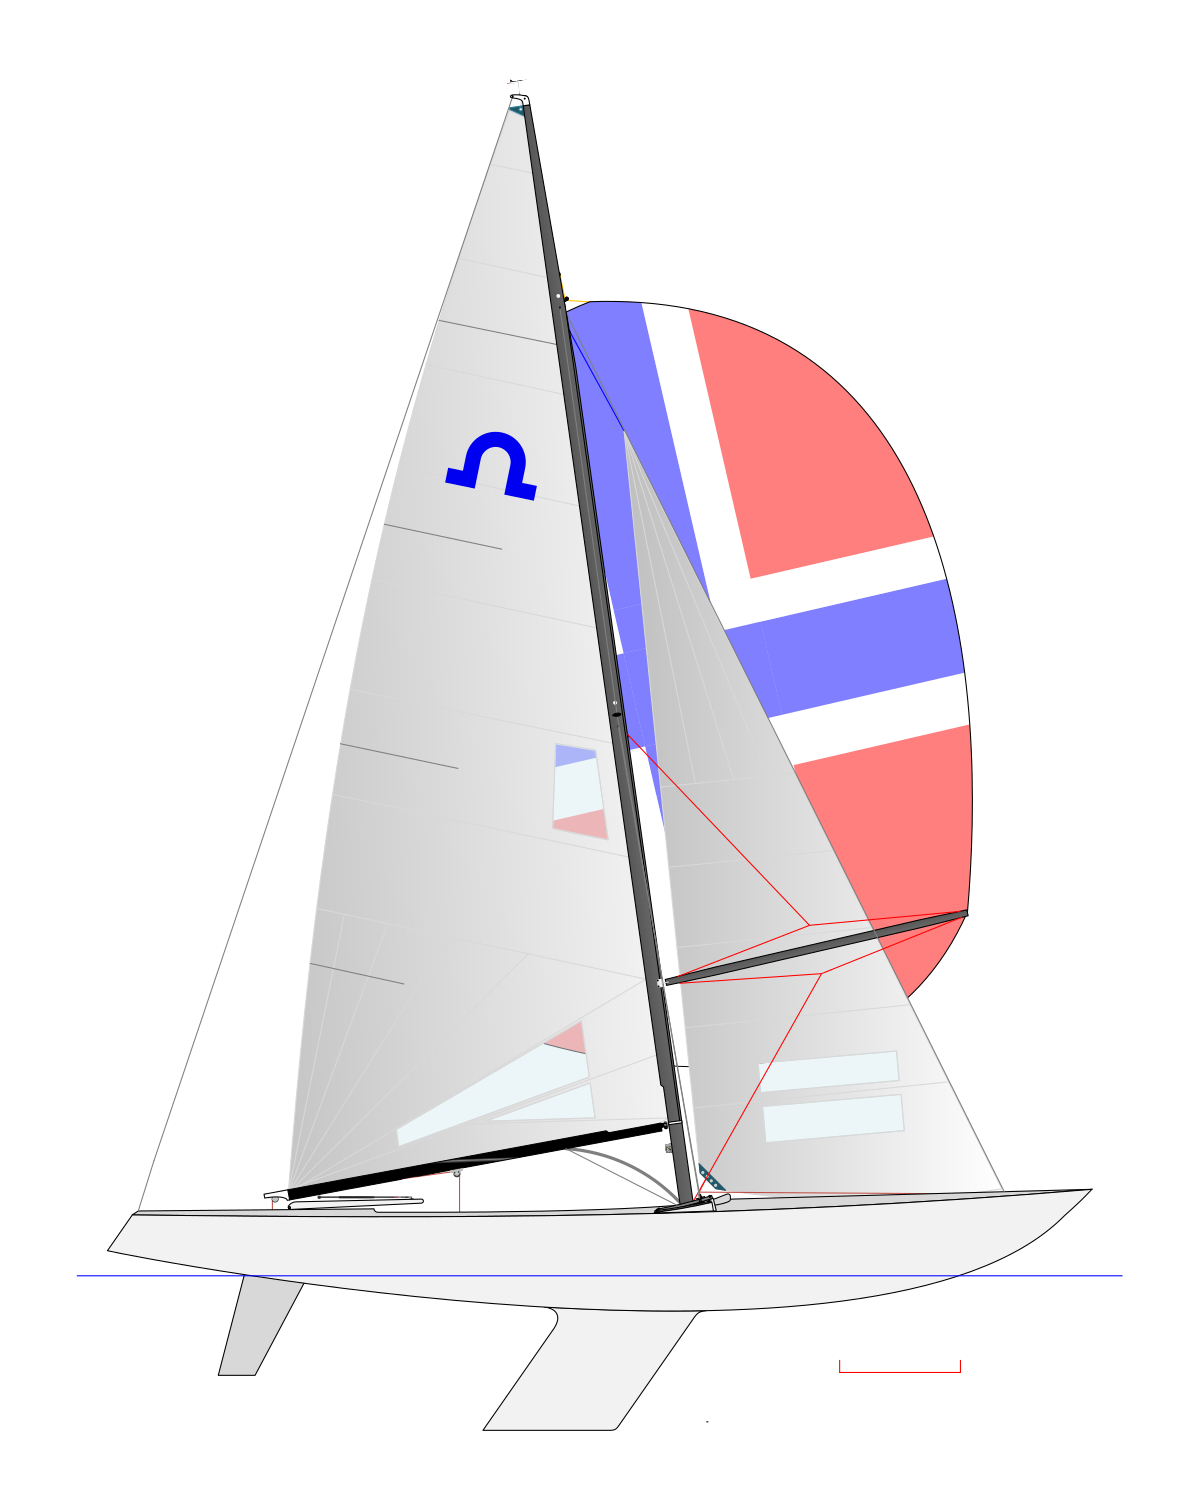 Sailing vector racing sailboat. Boat line drawing at